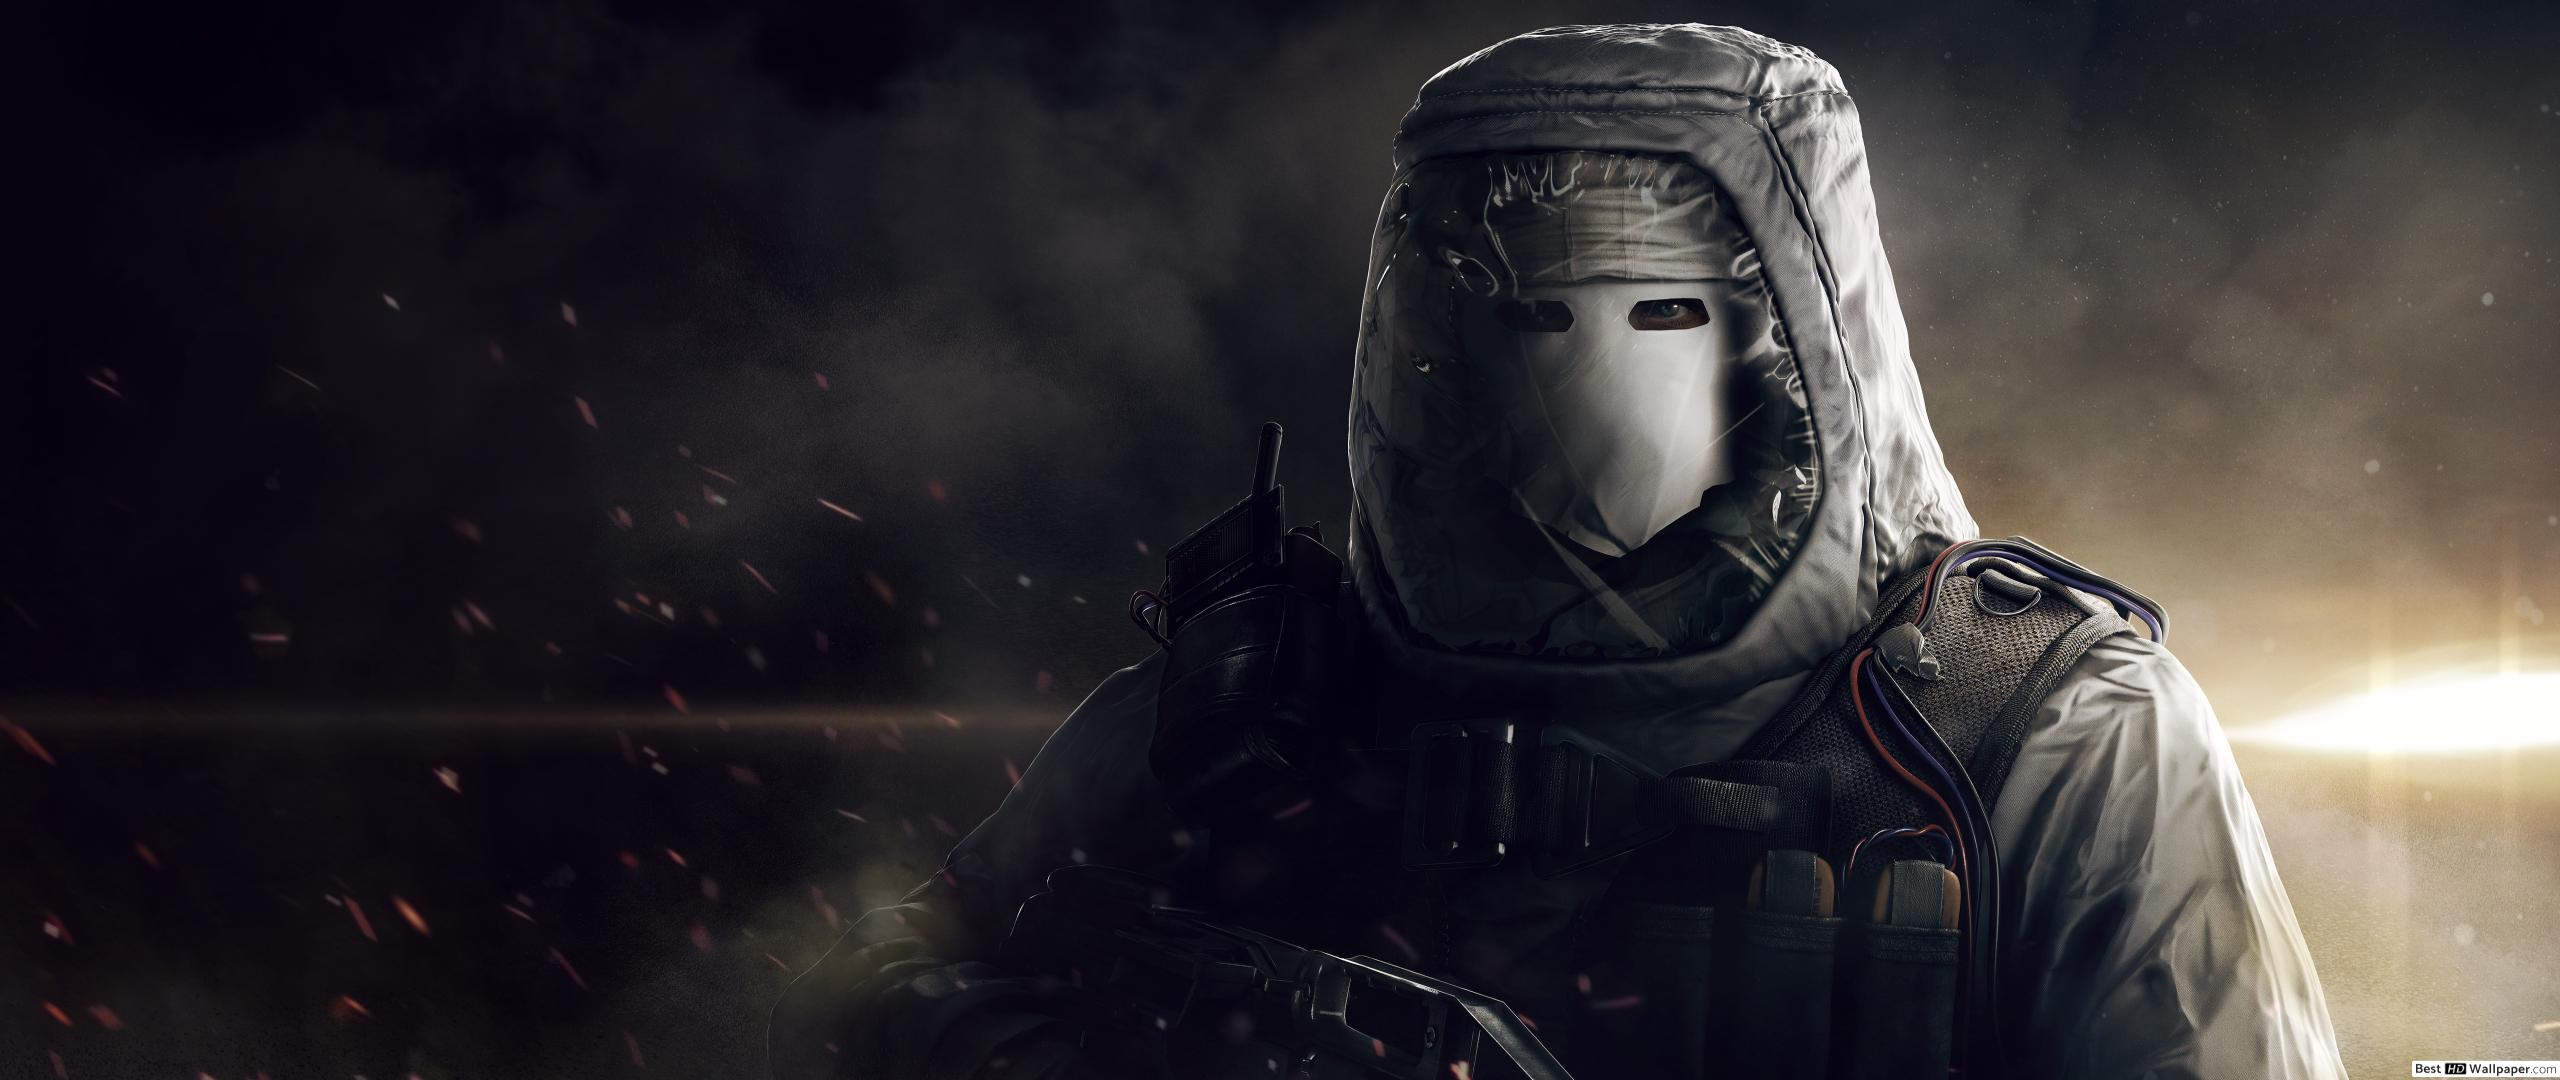 Rainbow Six Siege Pp 2547062 Hd Wallpaper Backgrounds Download